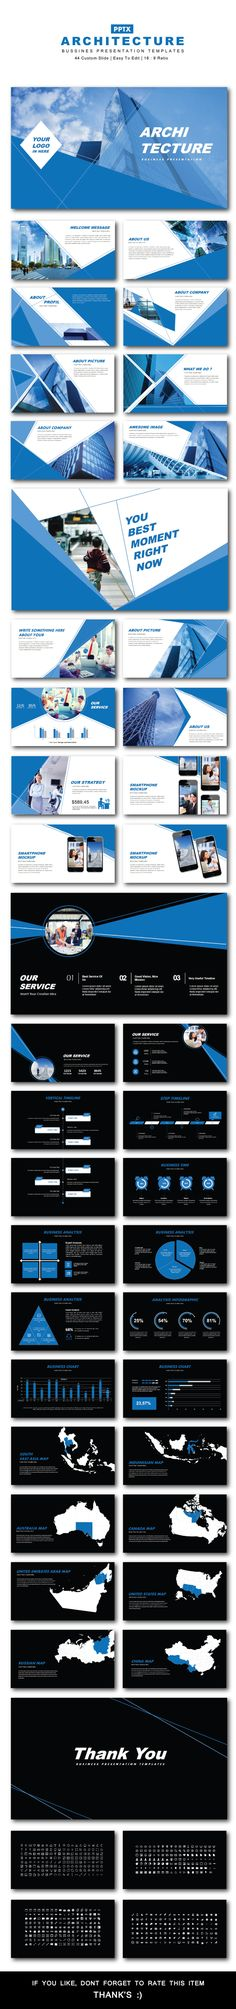 Architecture Bussines PowerPoint Templates